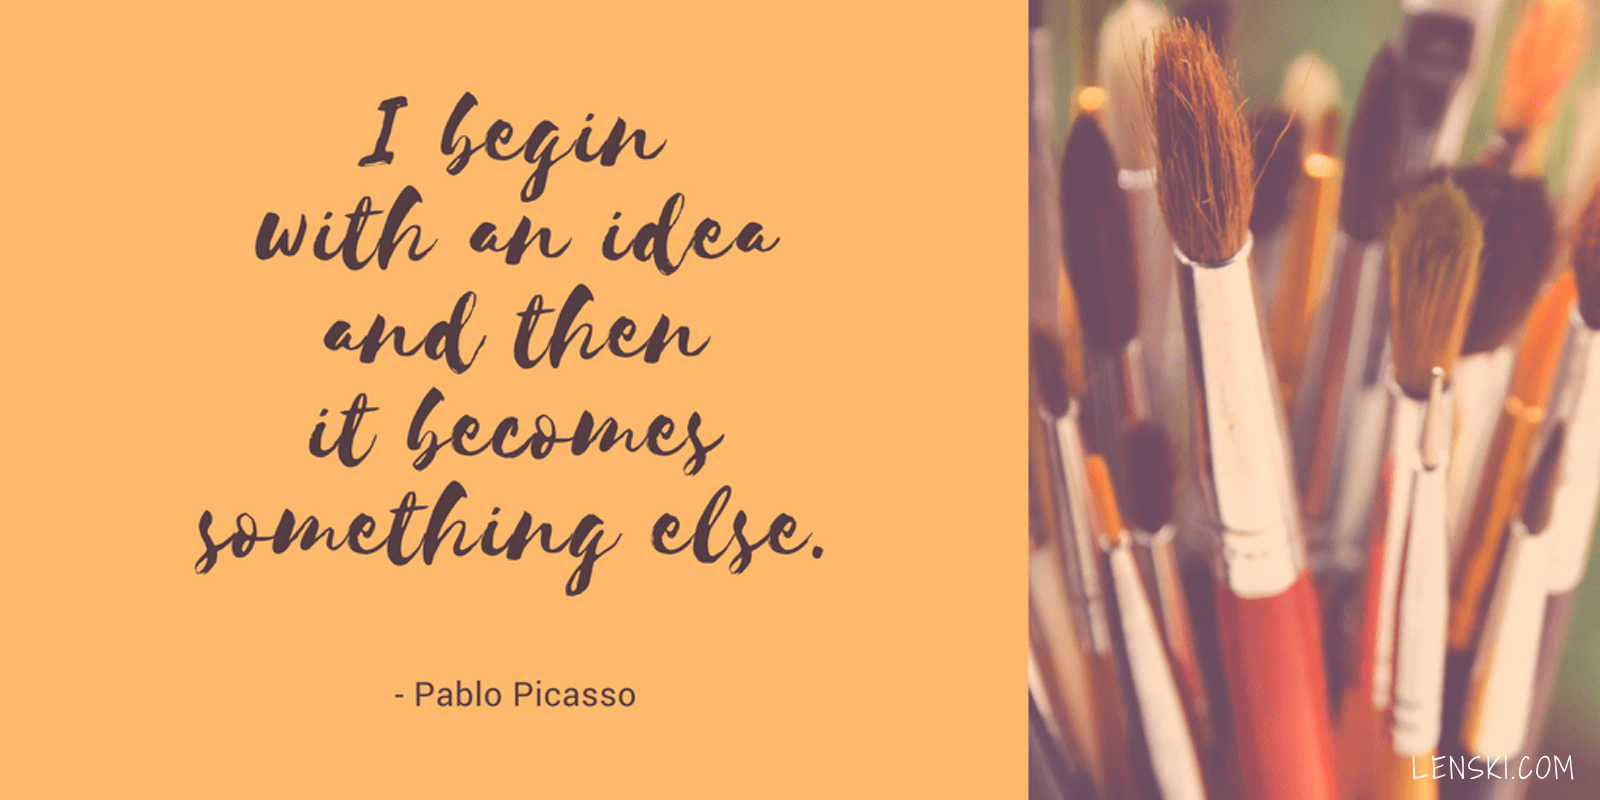 I begin with an idea and then it becomes something else. - Pablo Picasso